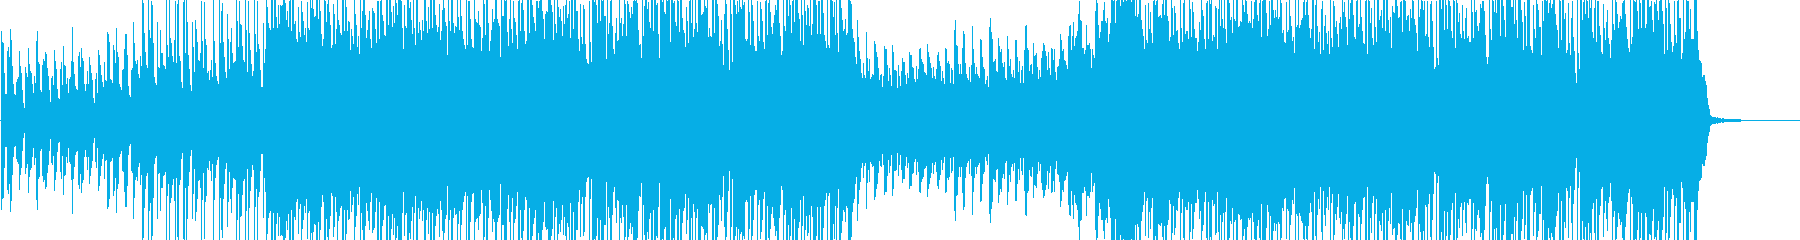 Rhythmic and cute happy heartwarming song's reproduced waveform